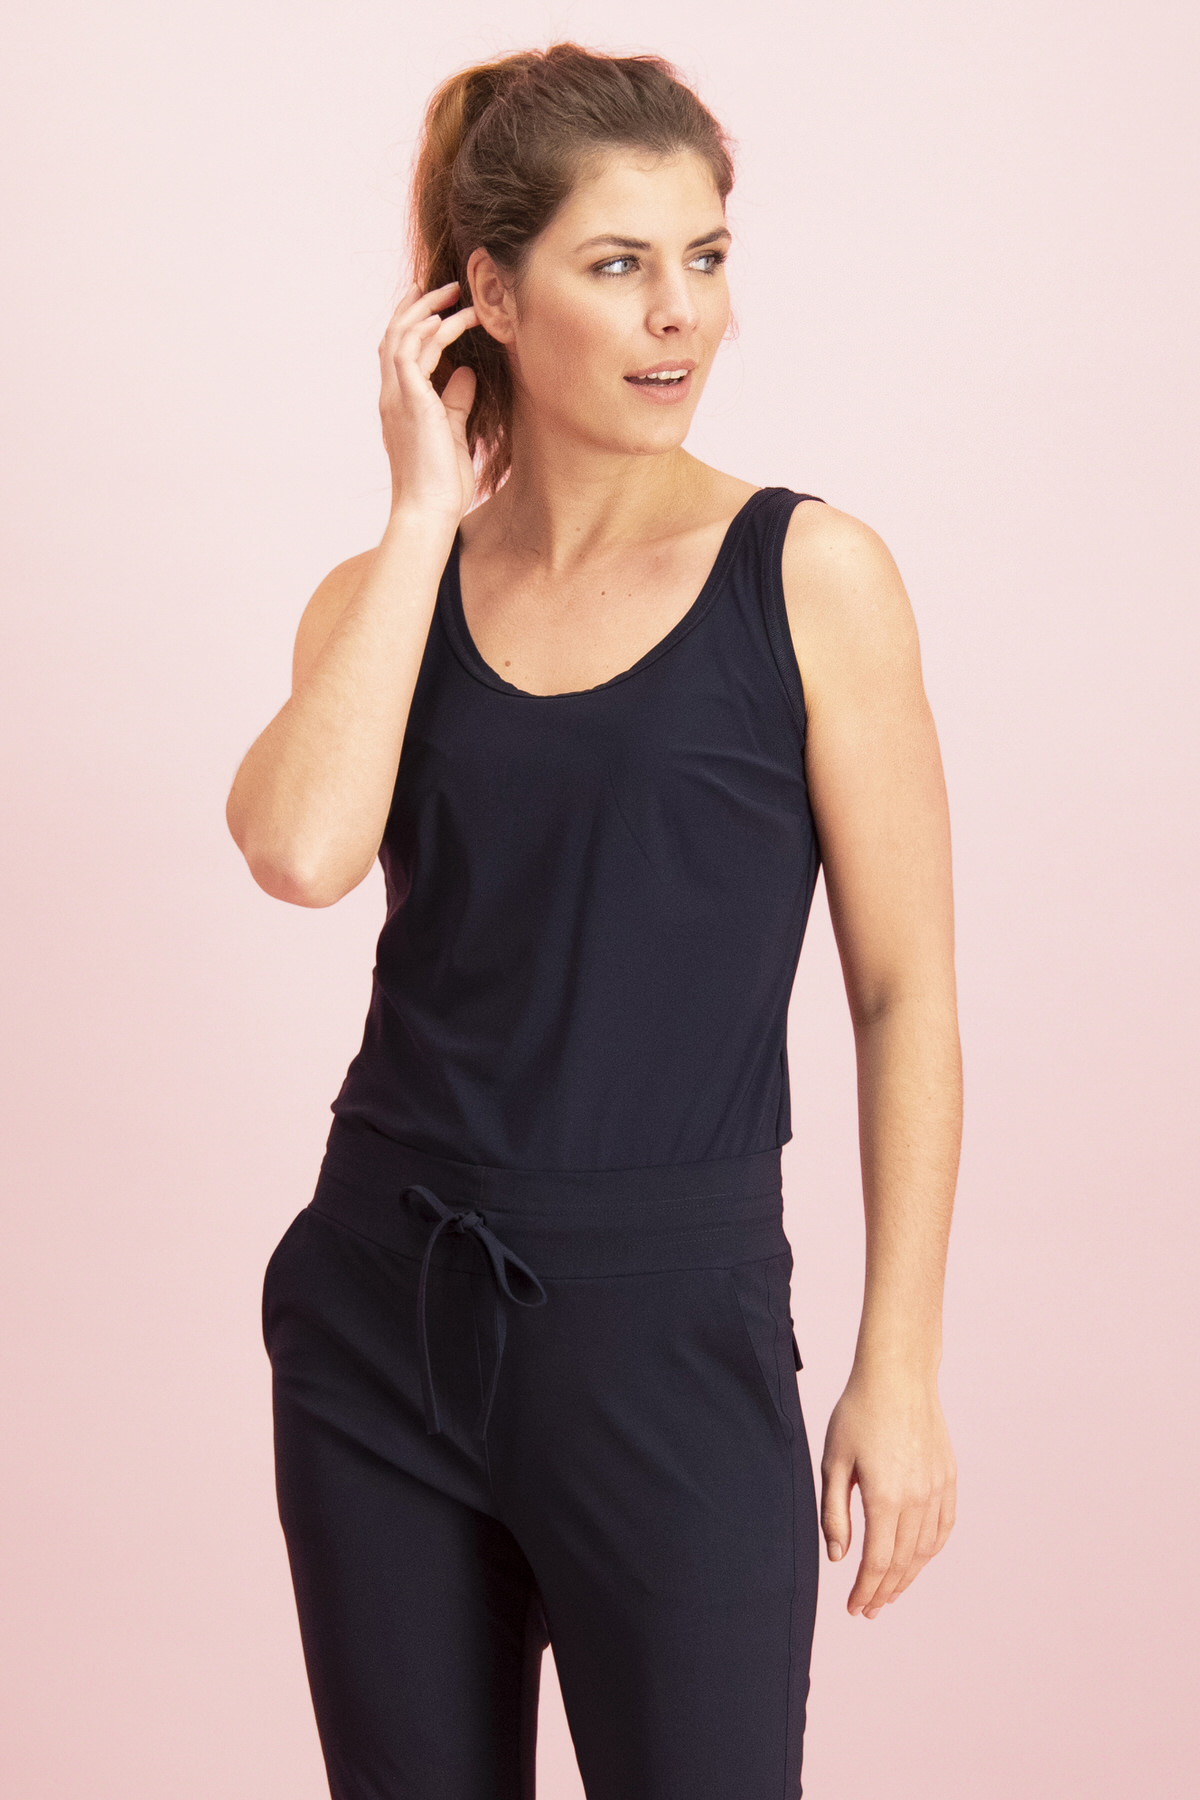 Race basic top - dark blue